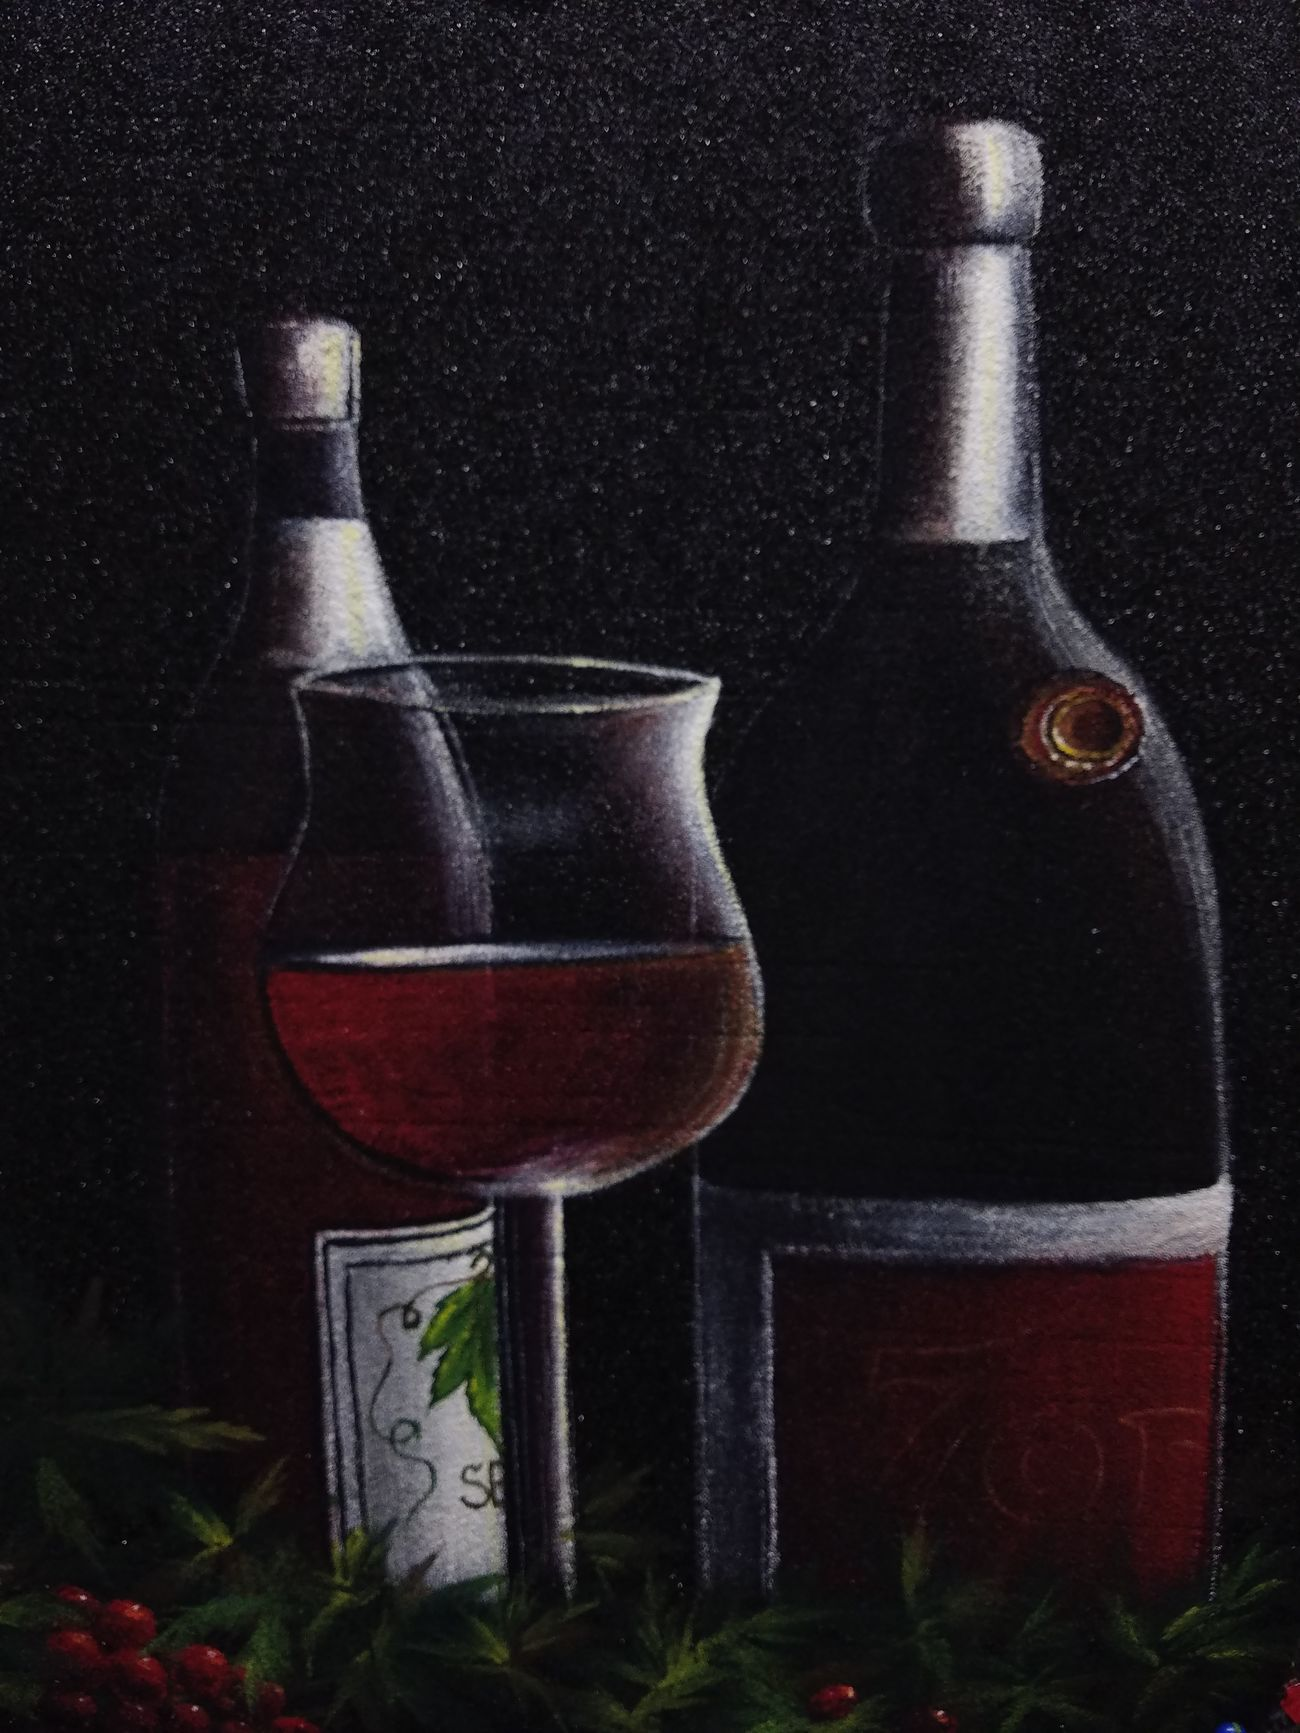 """Red Wine, Acrylic on my secret canvas 18""""_24"""".i dedicate this canvas to my lovely beautiful Pp baby lets drink this together, love you. Wine Bottle Drinking Glass Creativity Painting Drawing Fine Art My Art Colllection Freedom Fine Art Painting Art, Drawing, Creativity Art My Art Collection Acrylic Fine Art. Friendship. ♡   Love❤ Koi with My Best Friends ❤"""